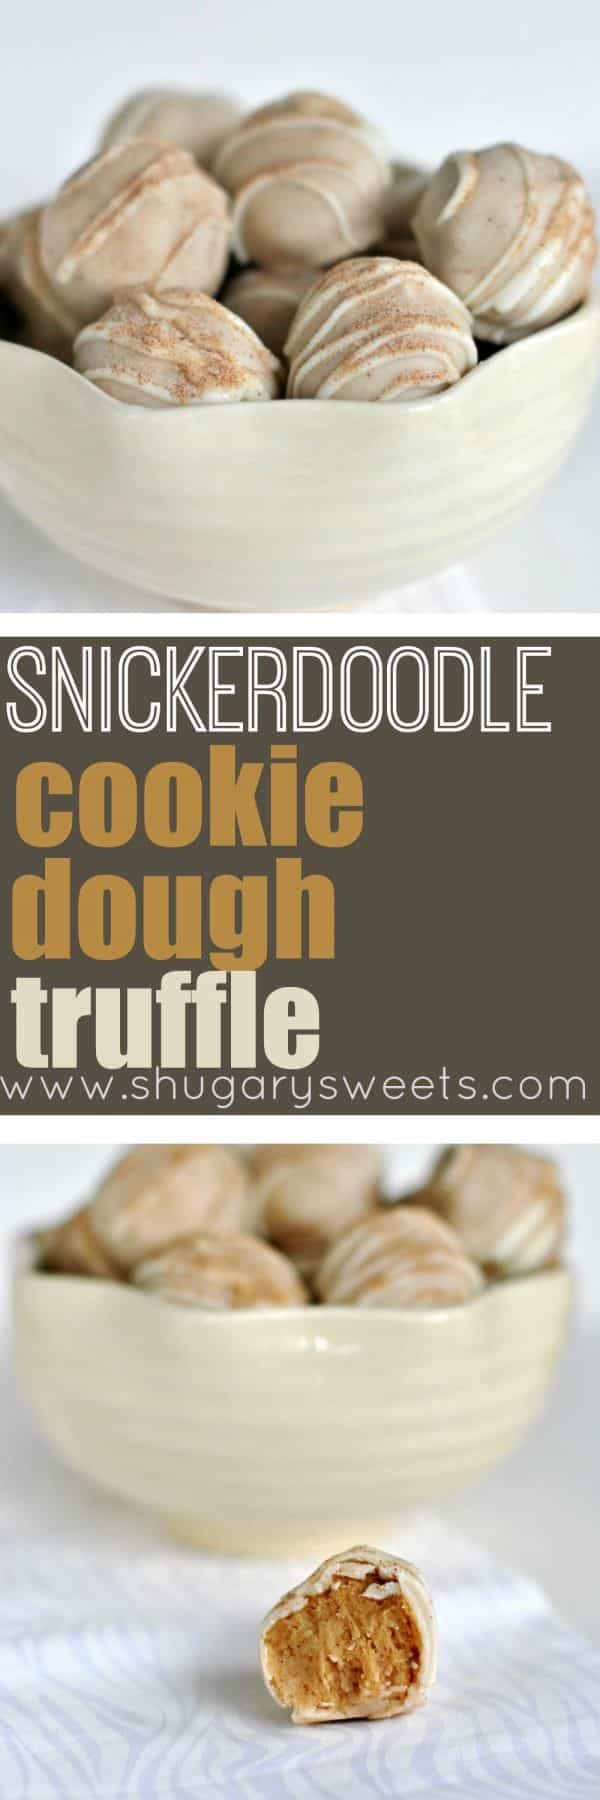 Snickerdoodle Cookie Dough Truffles: I've turned your classic childhood cookie into a no-egg truffle with a cinnamon coating!